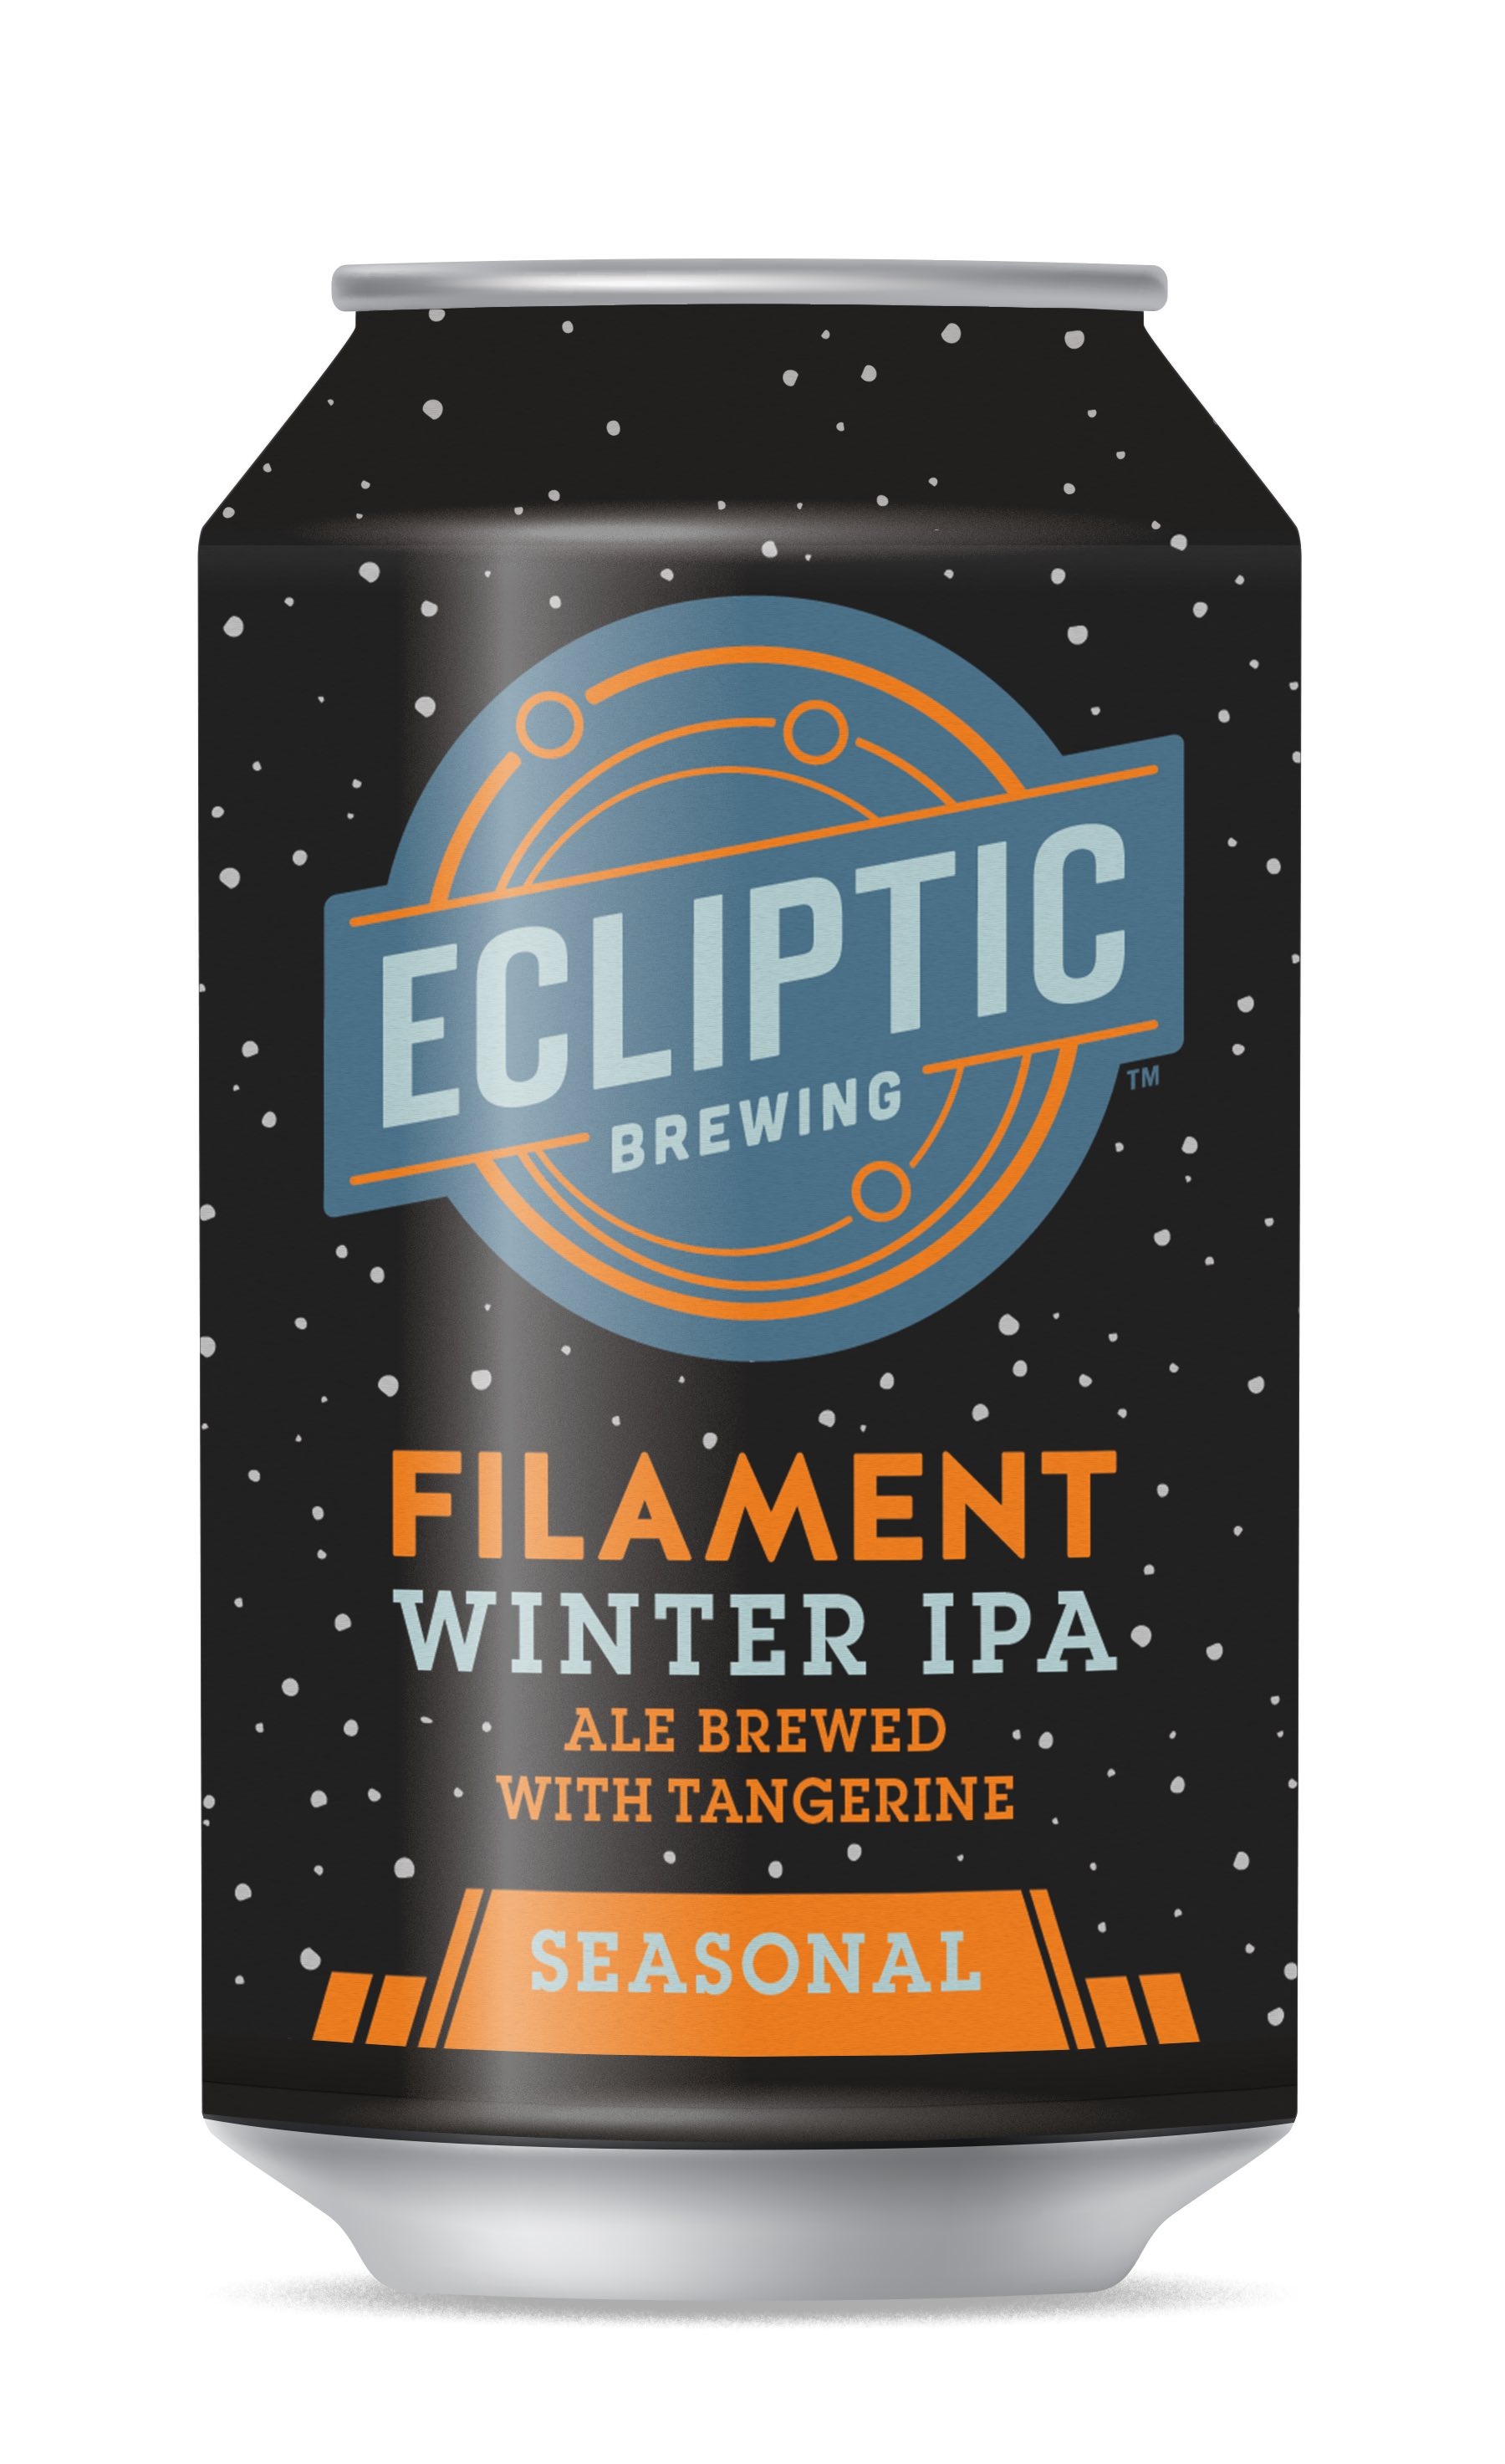 Ecliptic Brewing Filament Winter IPA - Ale Brewed with Tangerine